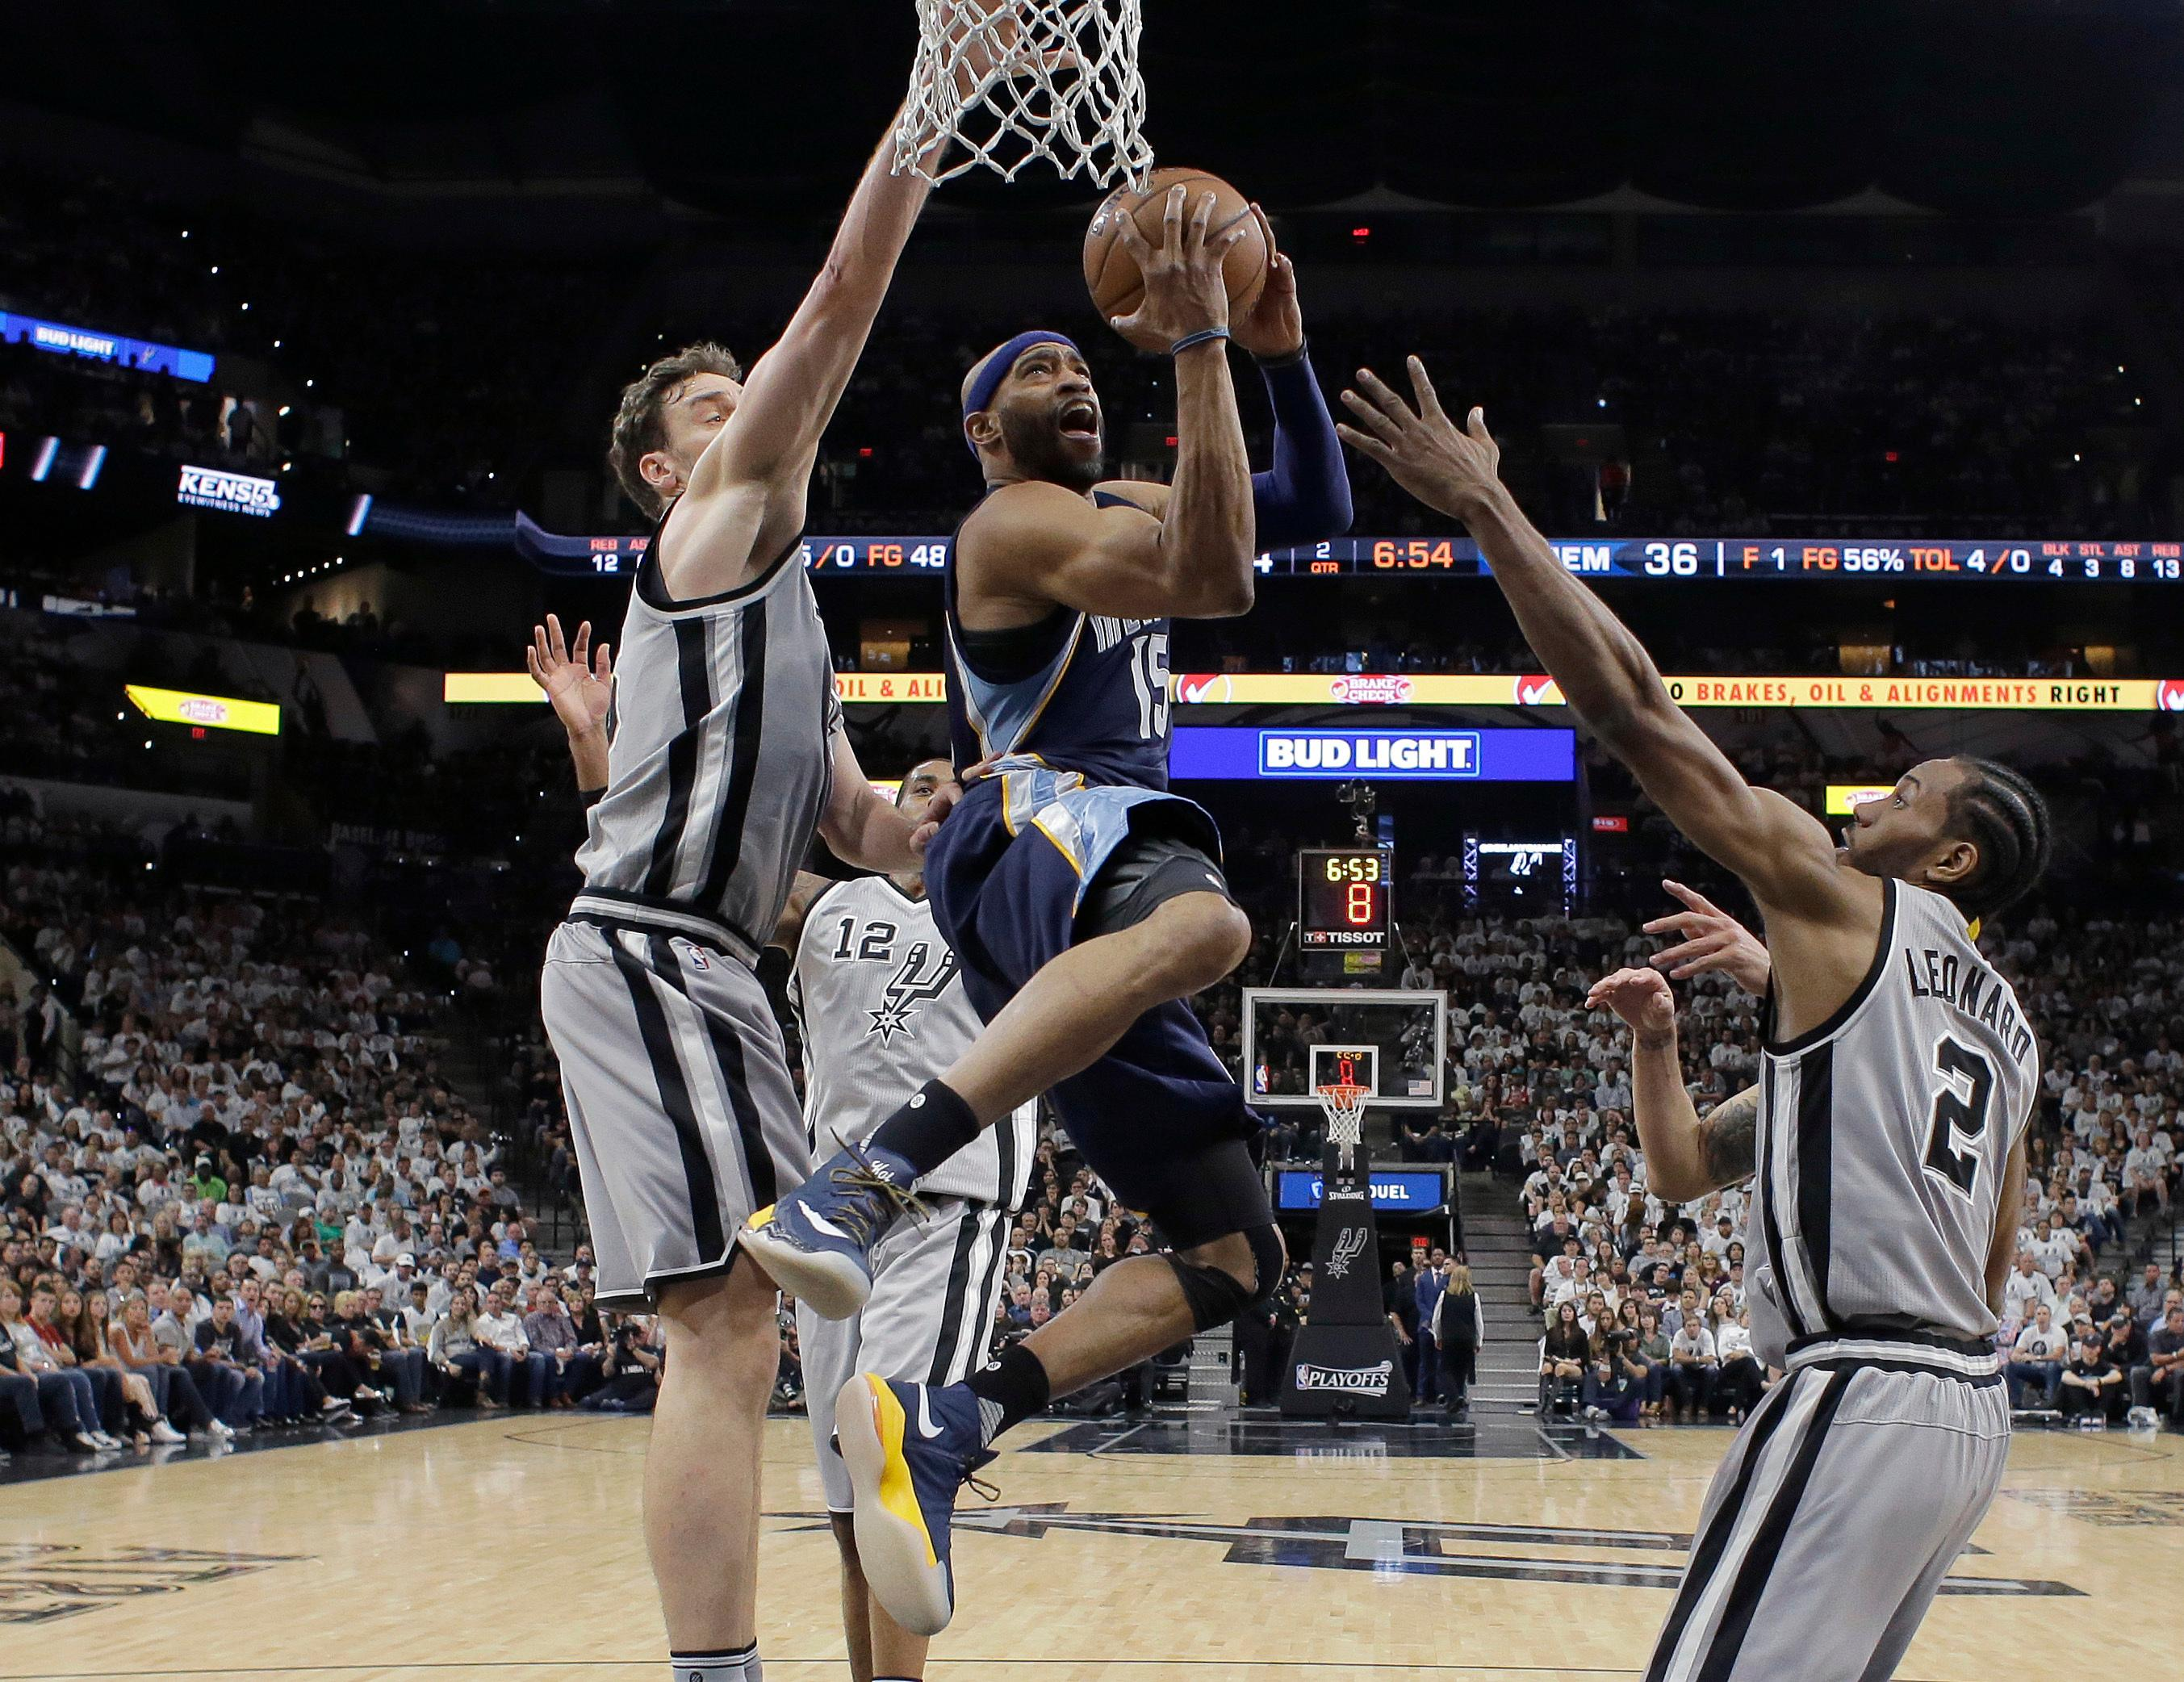 Memphis Grizzlies guard Vince Carter (15) shoots between Spurs San Antonio Spurs center Pau Gasol, left, and forward Kawhi Leonard (2) during the first half of Game 1 in a first-round NBA basketball playoff series, Saturday, April 15, 2017, in San Antonio. (AP Photo/Eric Gay)